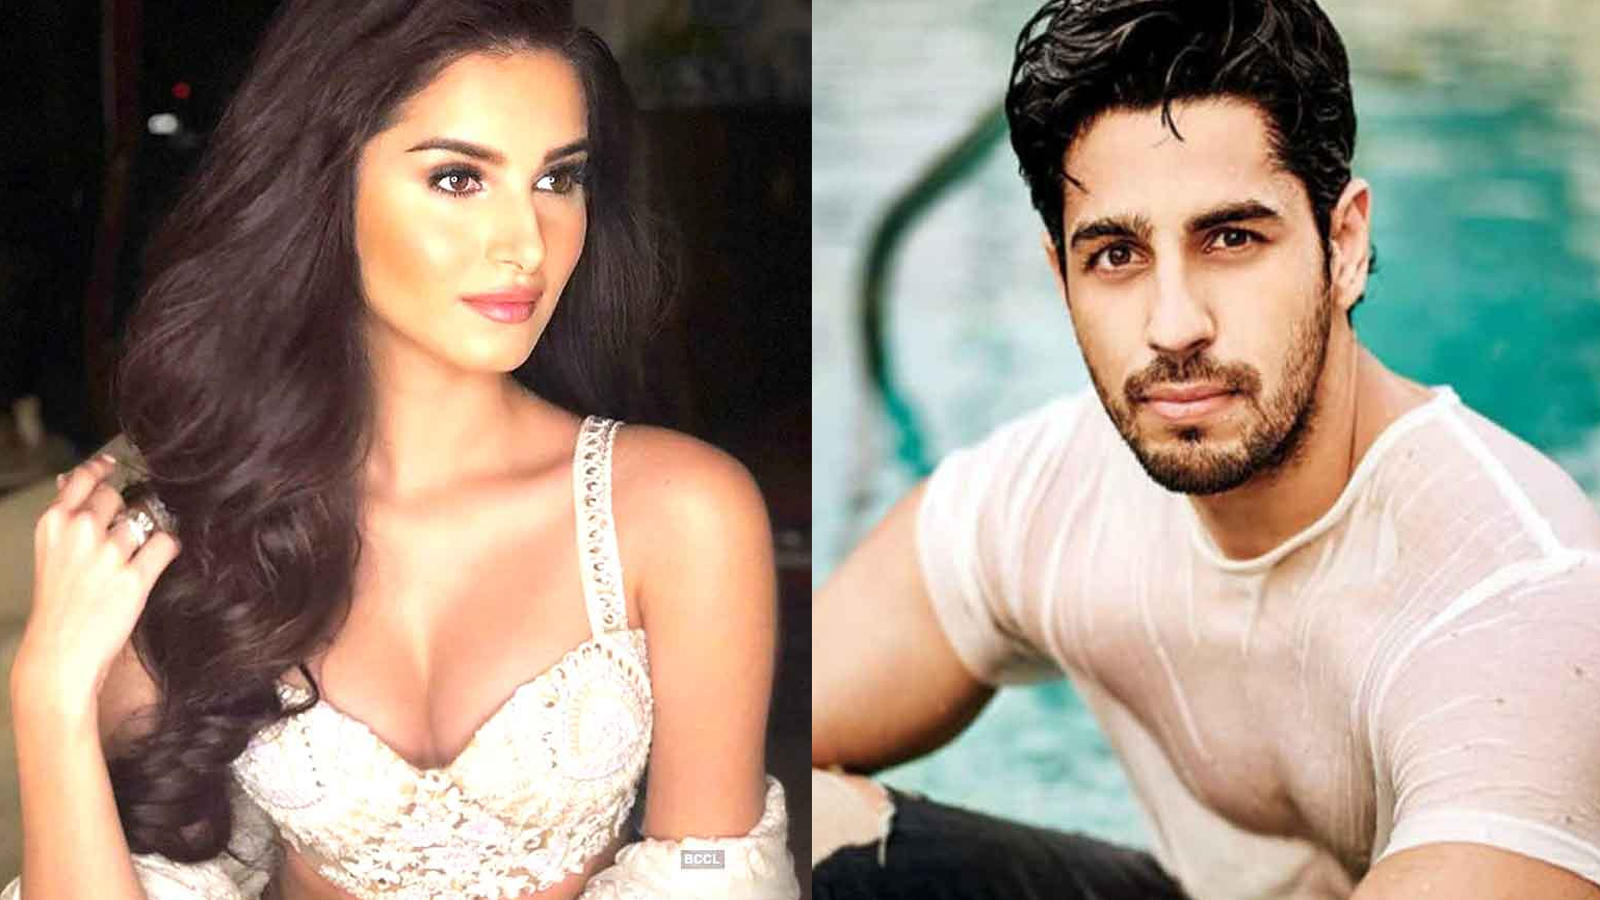 Tara Sutaria reacts on link-up rumours with Sidharth Malhotra